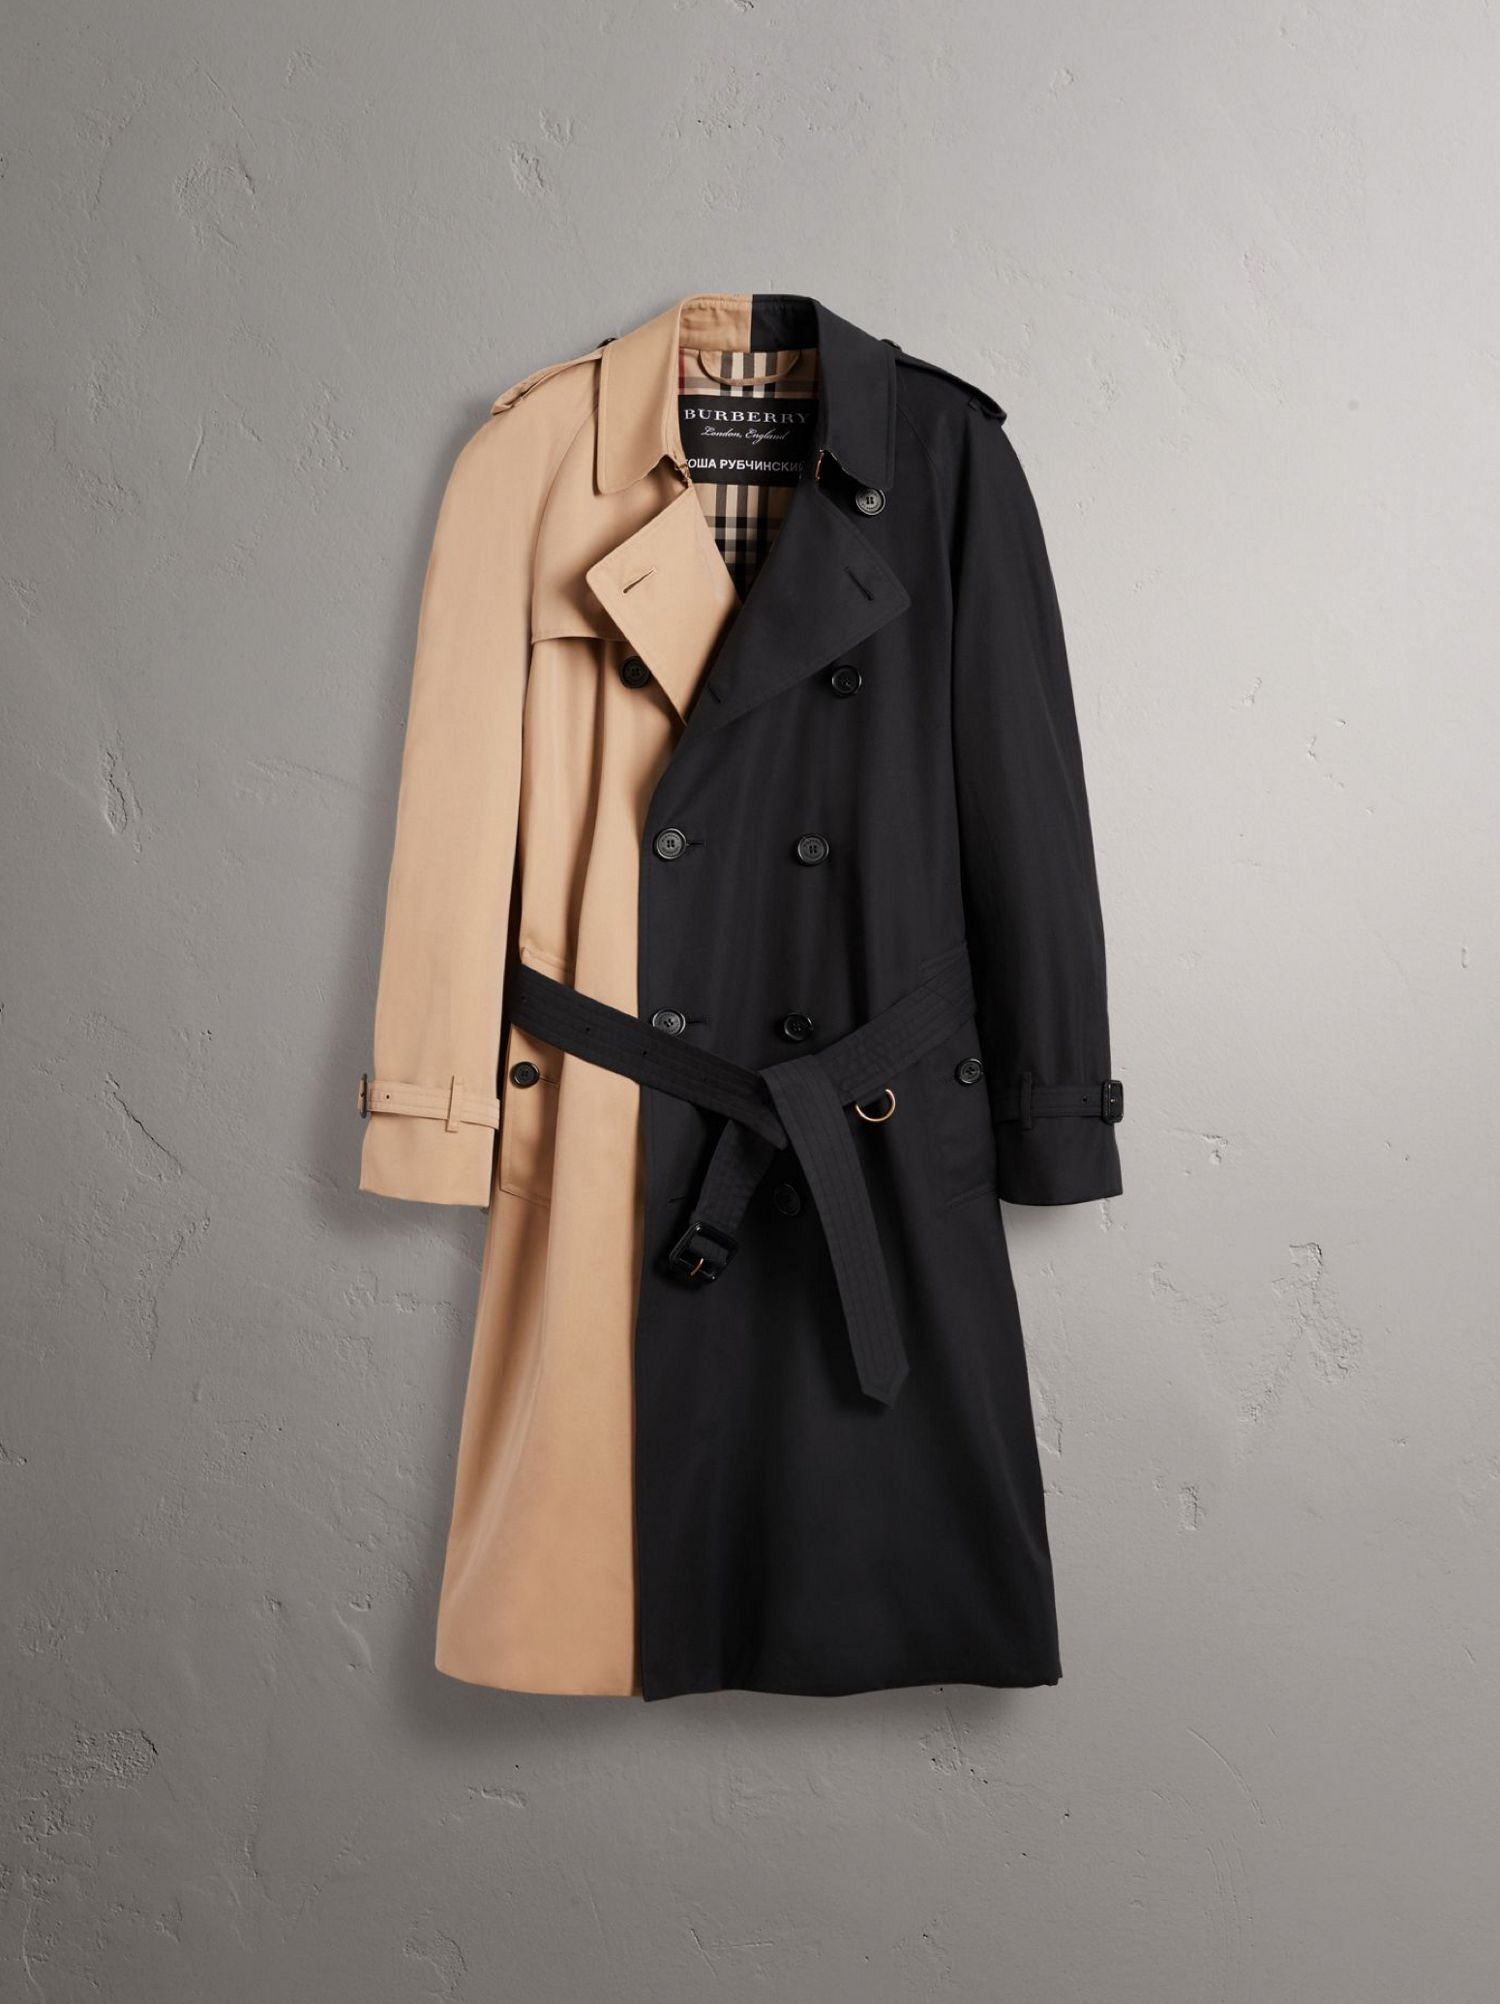 Gosha x Burberry Two-tone Trench Coat in Honey